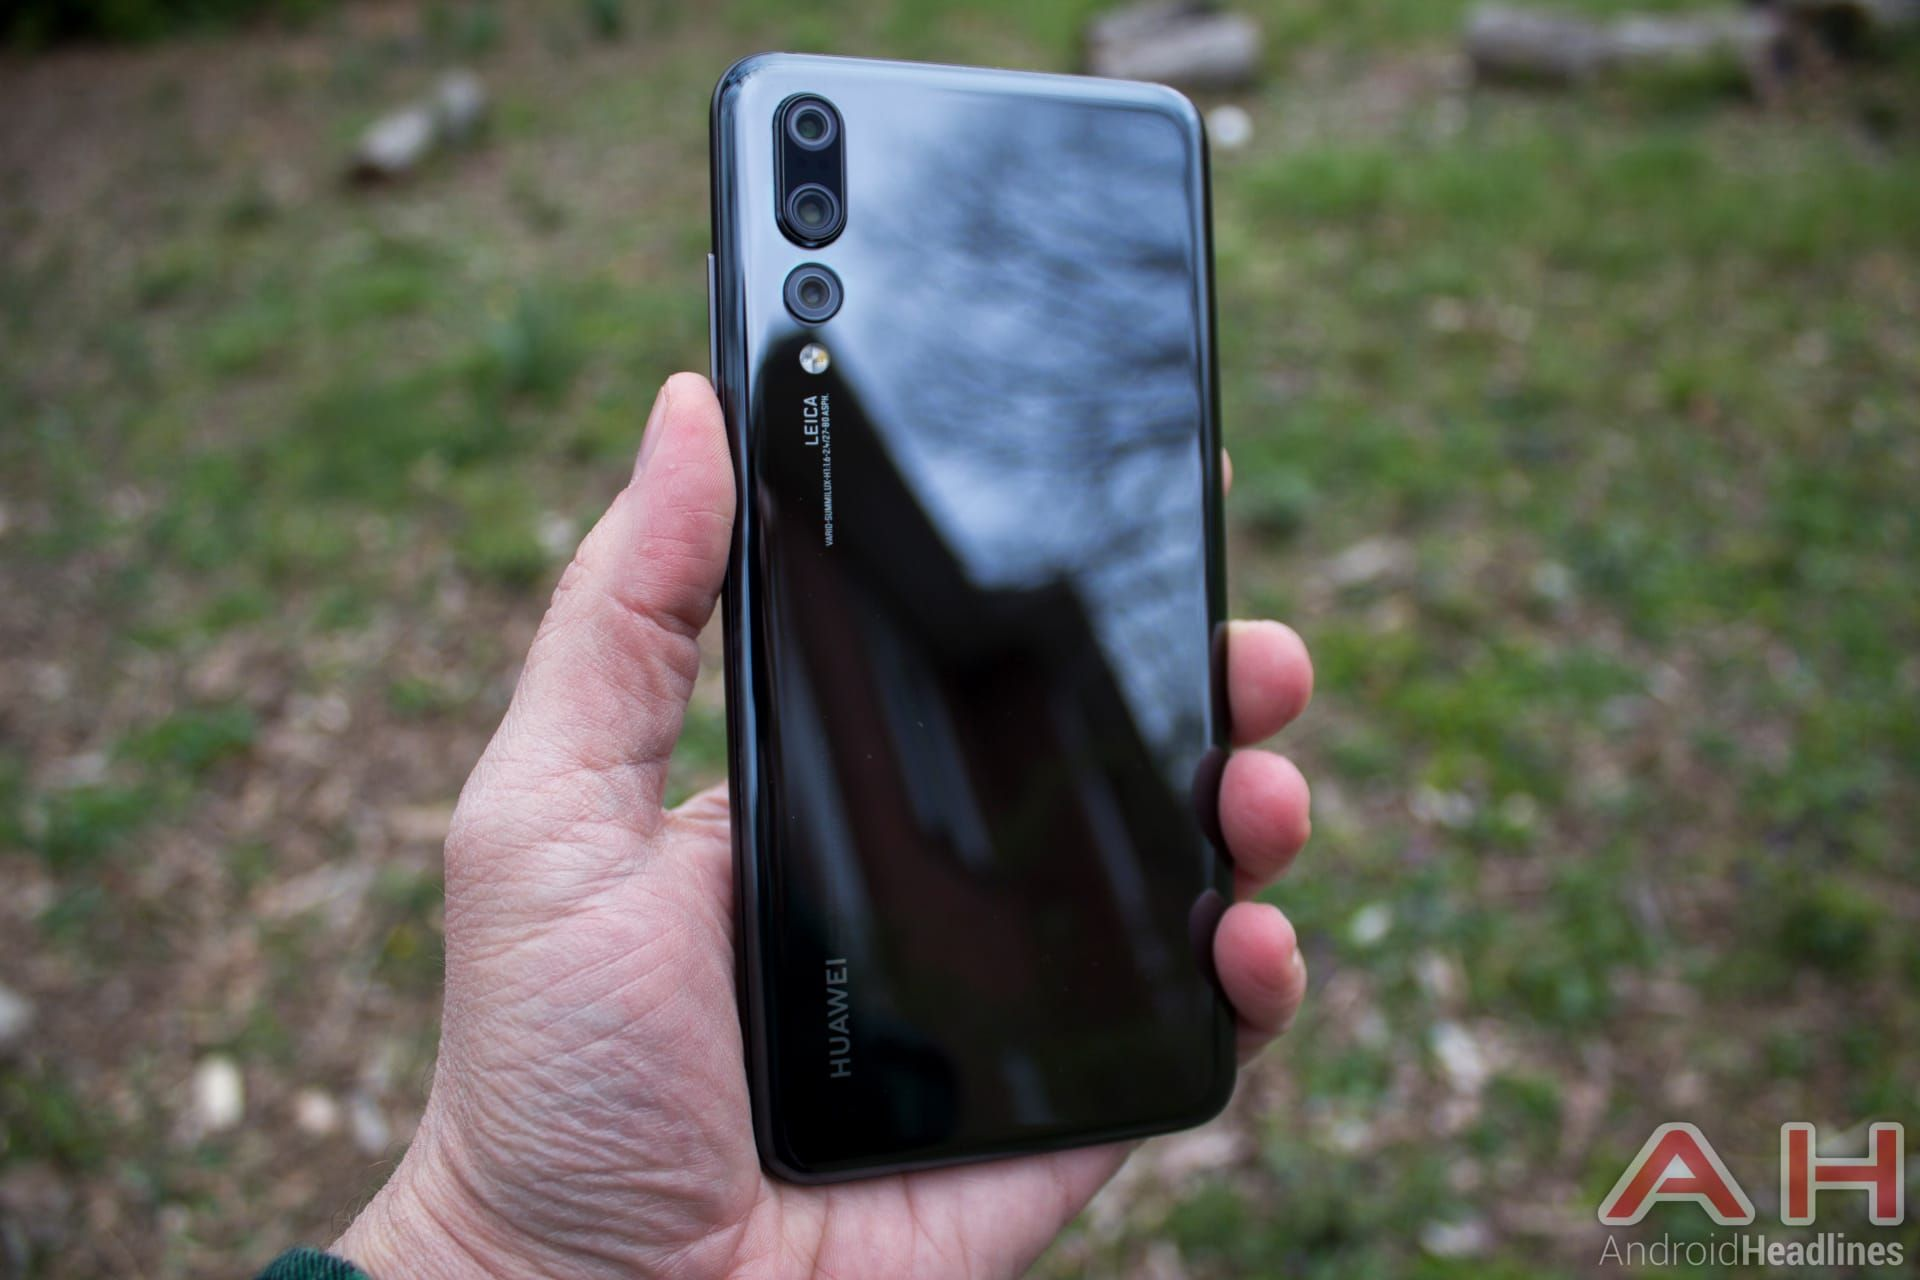 huawei p20 pro update android 9